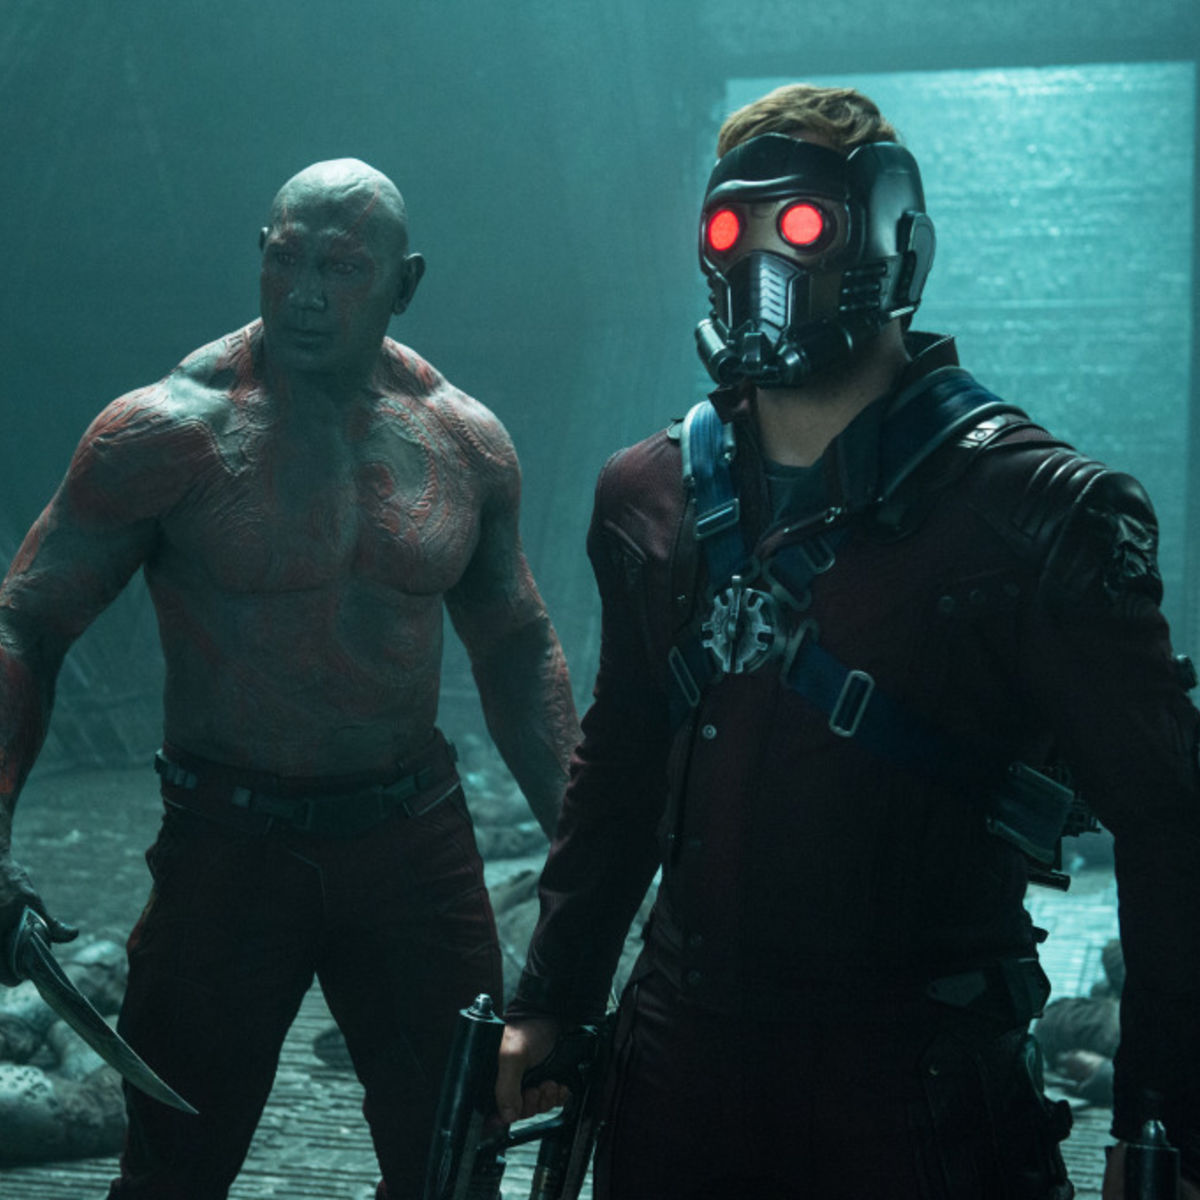 guardians-of-the-galaxy-star-lord-drax-1024x681.jpg